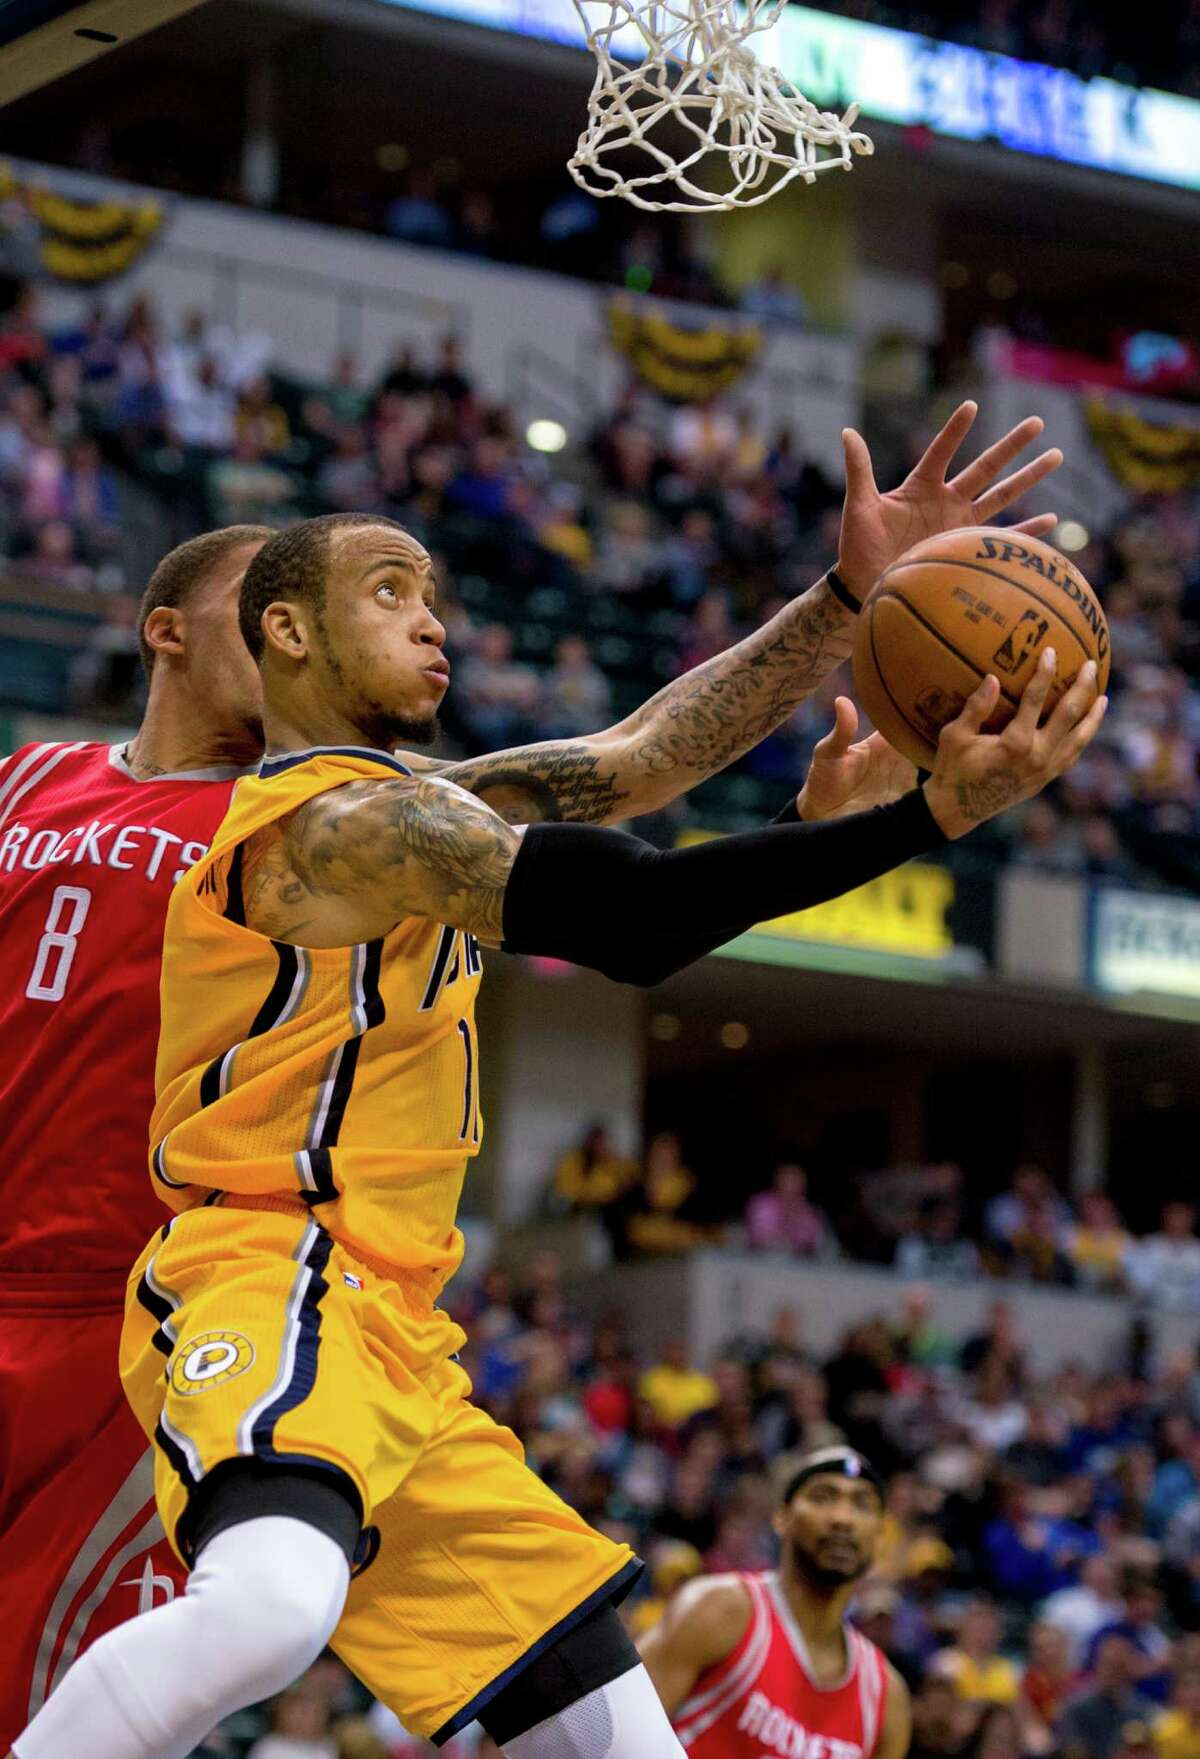 Indiana Pacers guard Monta Ellis (11) slips under the basket for a reverse lay-up attempt as he's defended by Houston Rockets forward Michael Beasley (8) during the second half of an NBA basketball game, Sunday, March 27, 2016, in Indianapolis. The Pacers won 104-101.